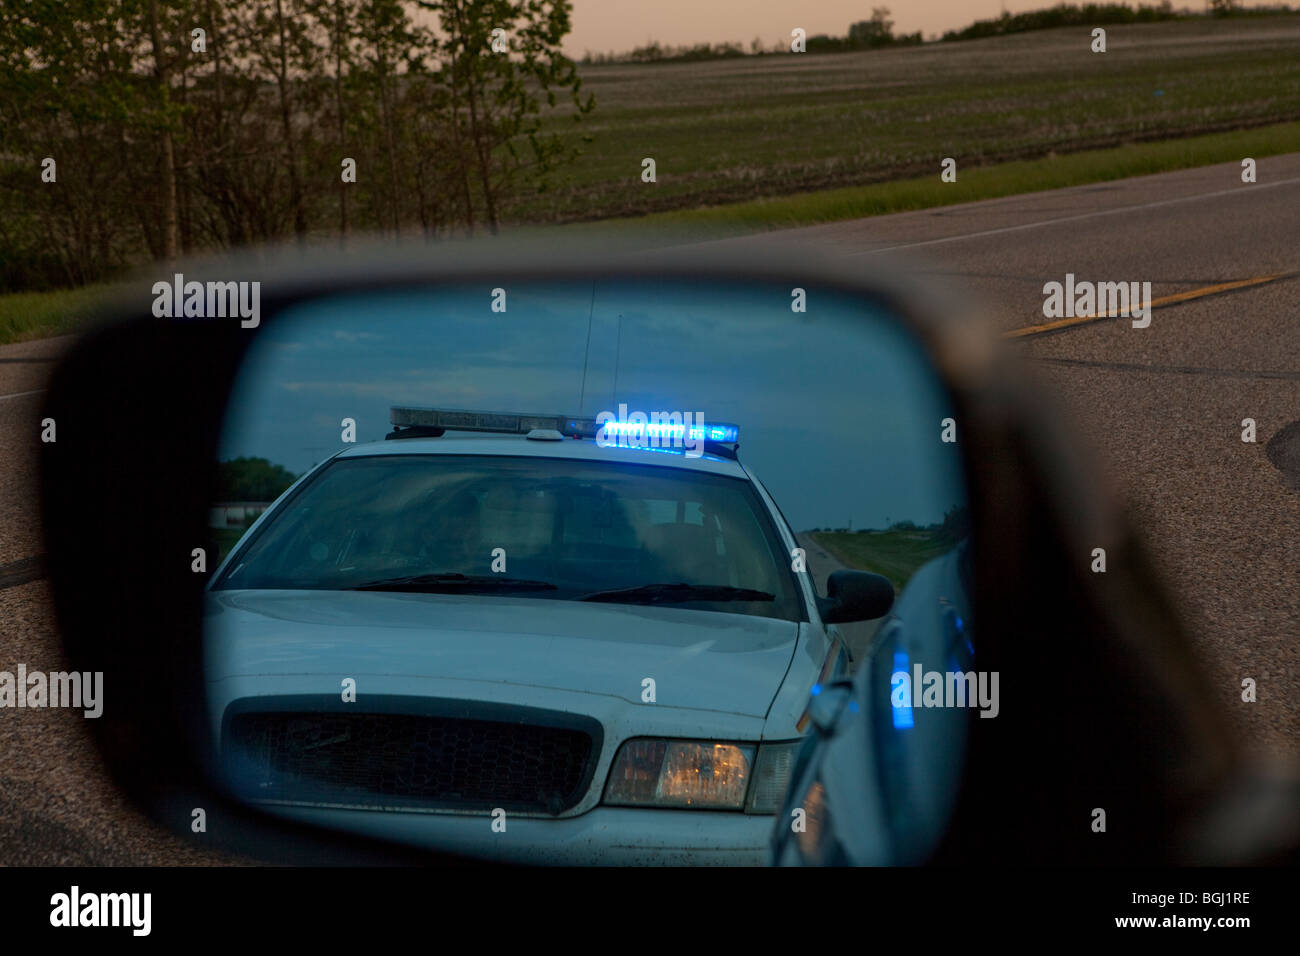 A Police Car In The Rear View Mirror Of A Vehicle   Stock Image